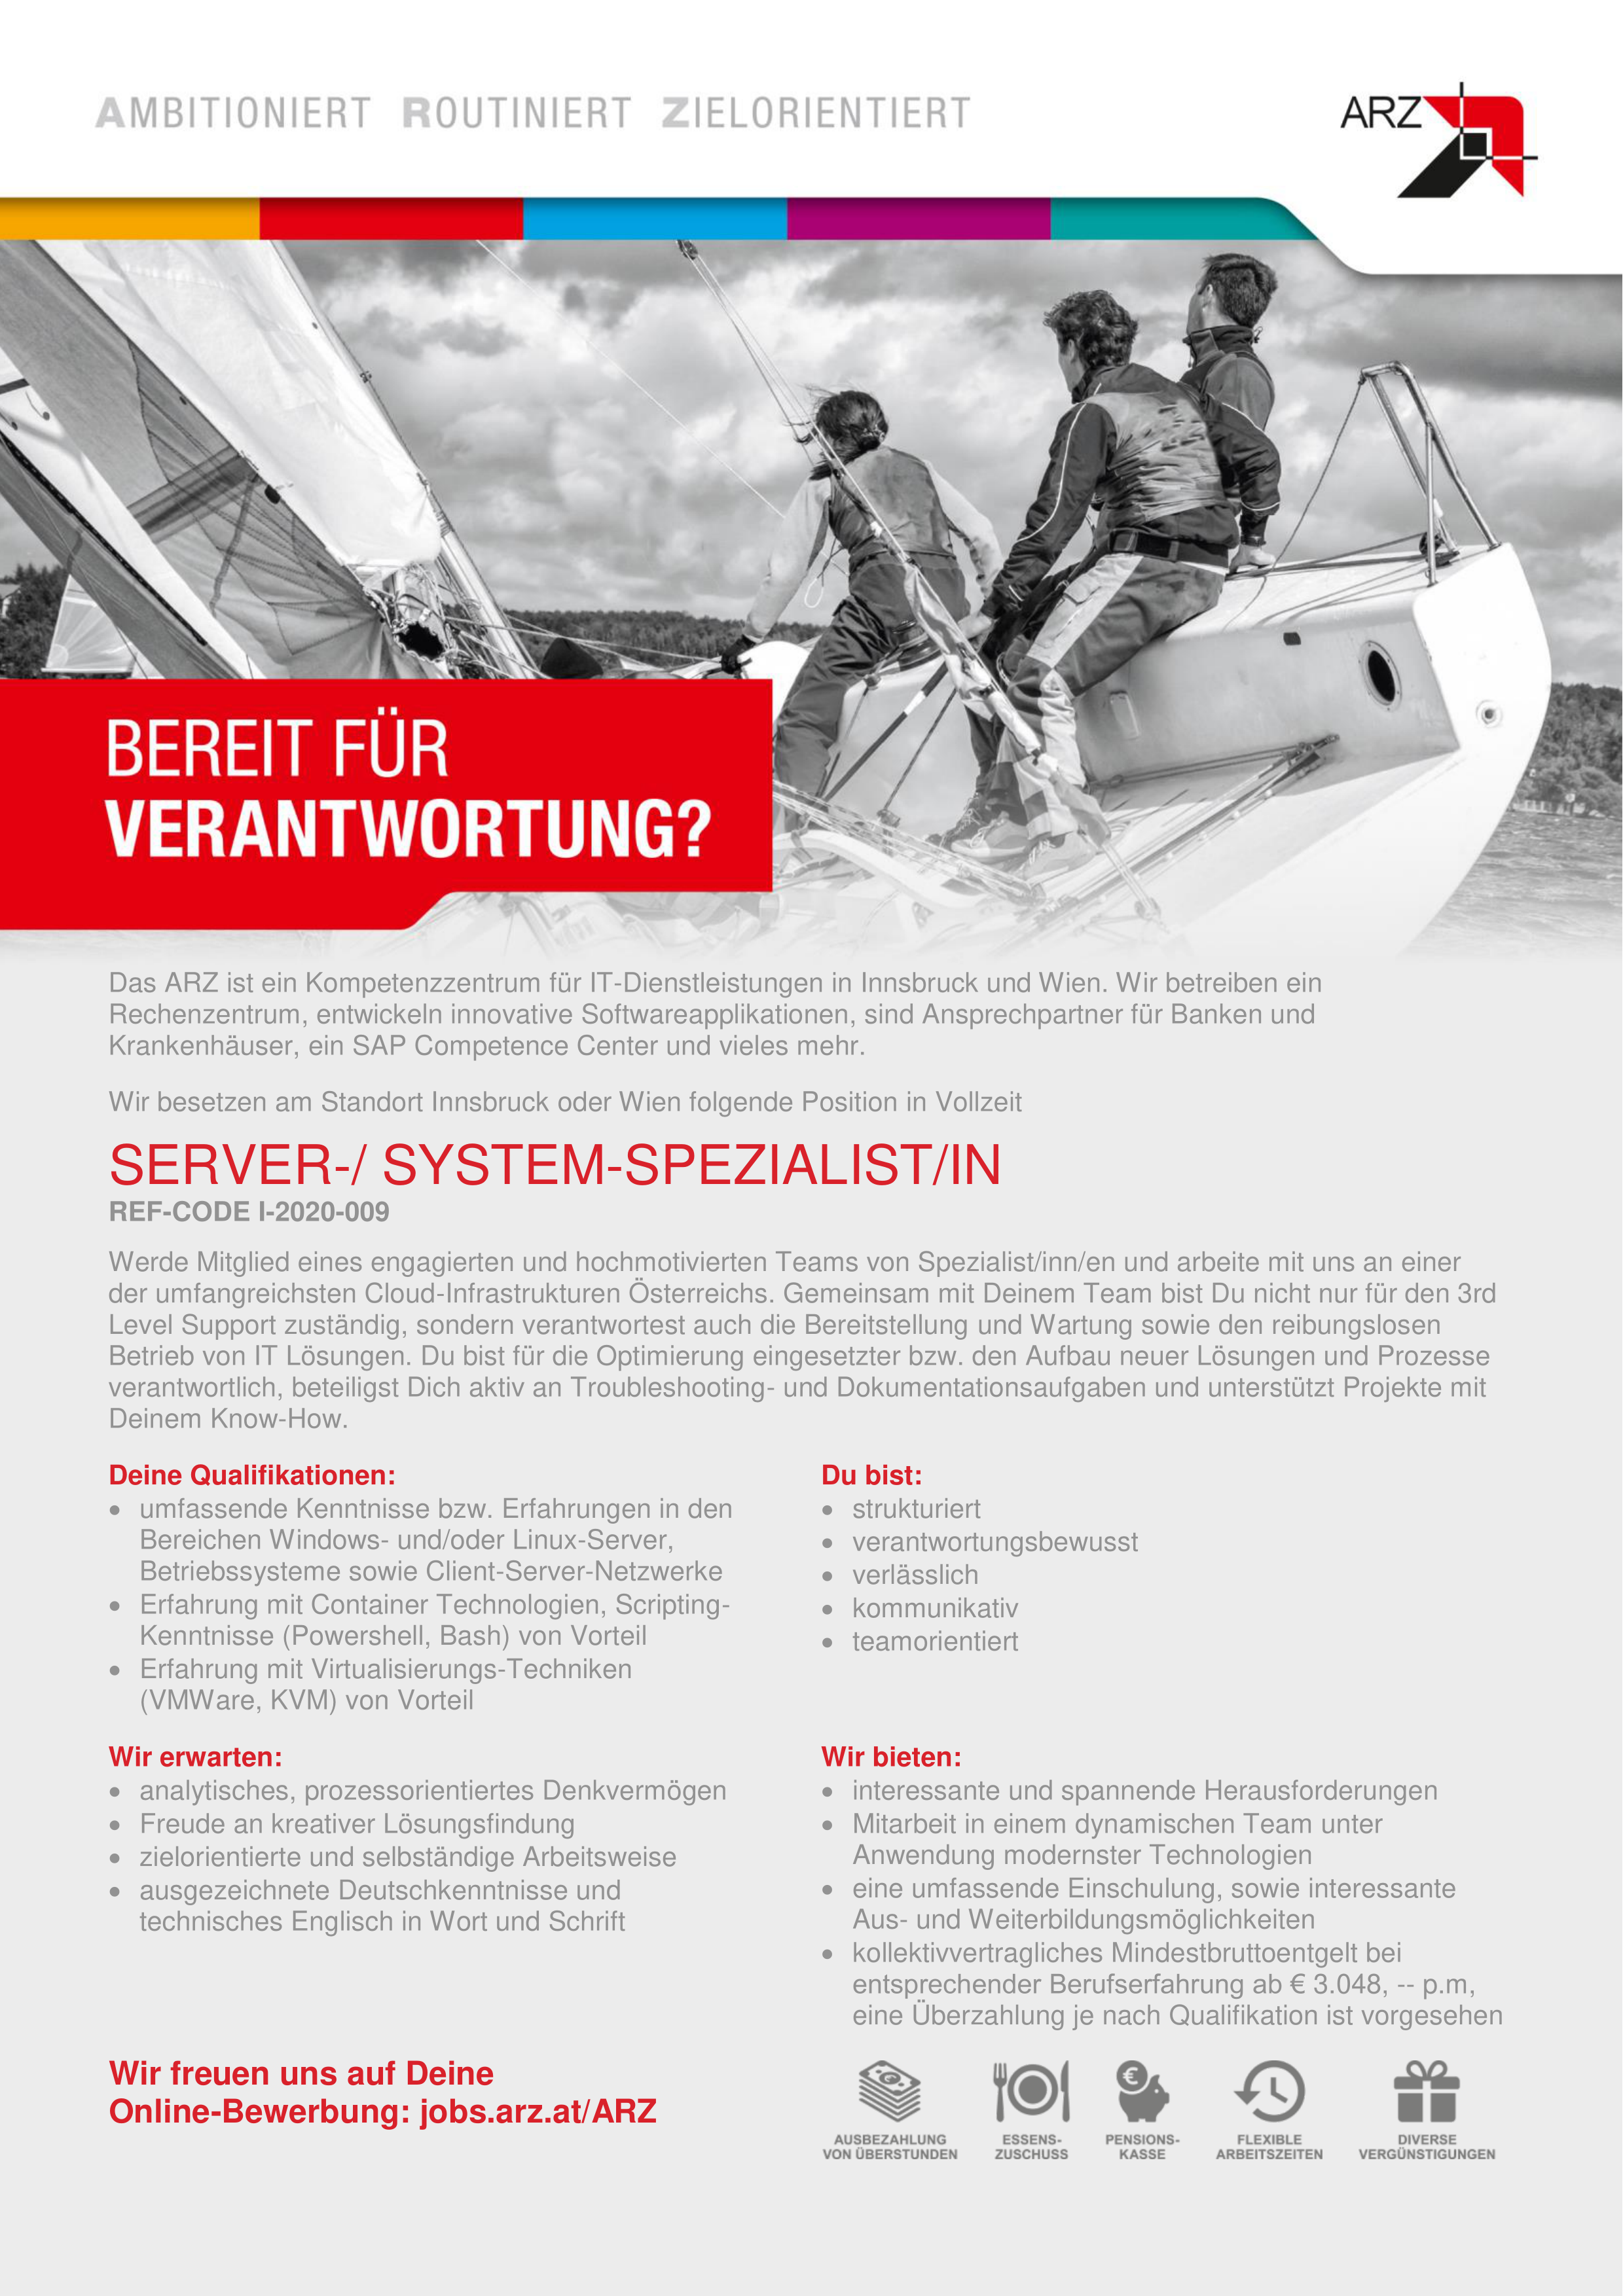 Server-/ System Spezialist/in REF-CODE I-2020-009